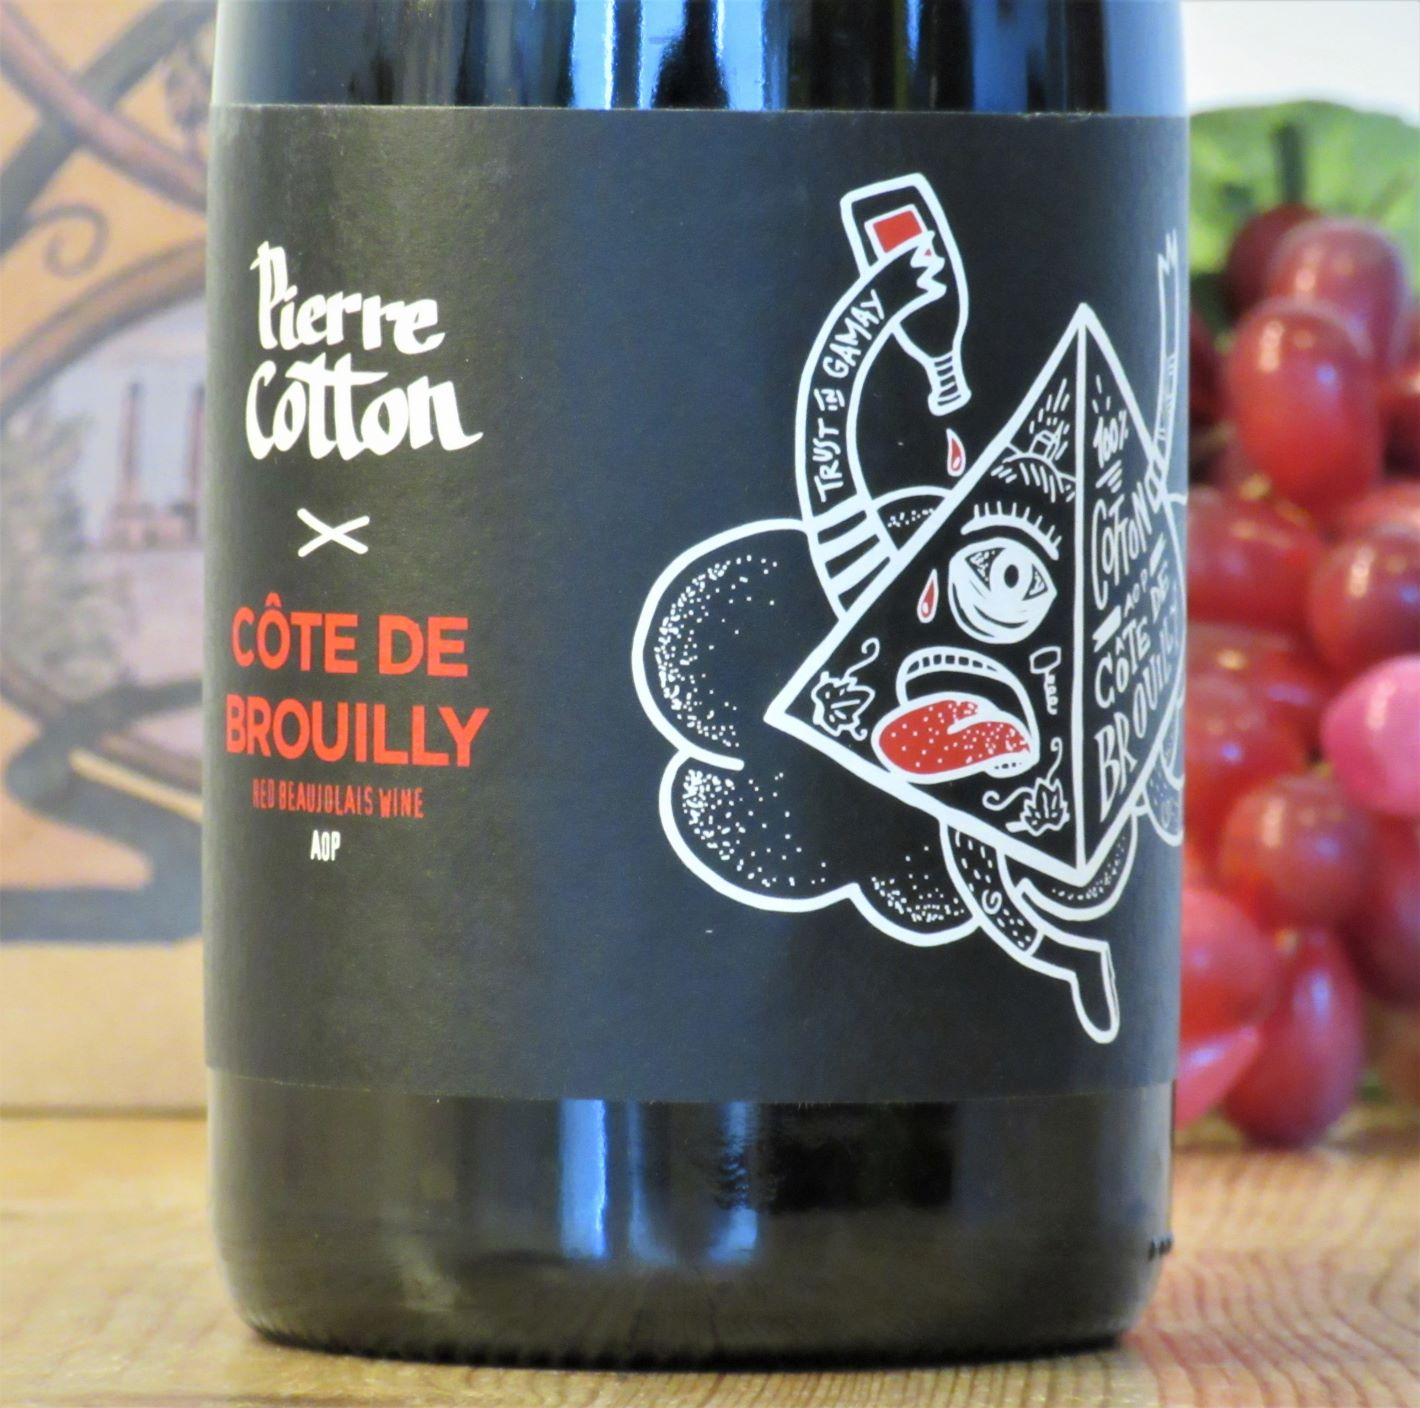 Pierre Cotton Cote de Brouilly